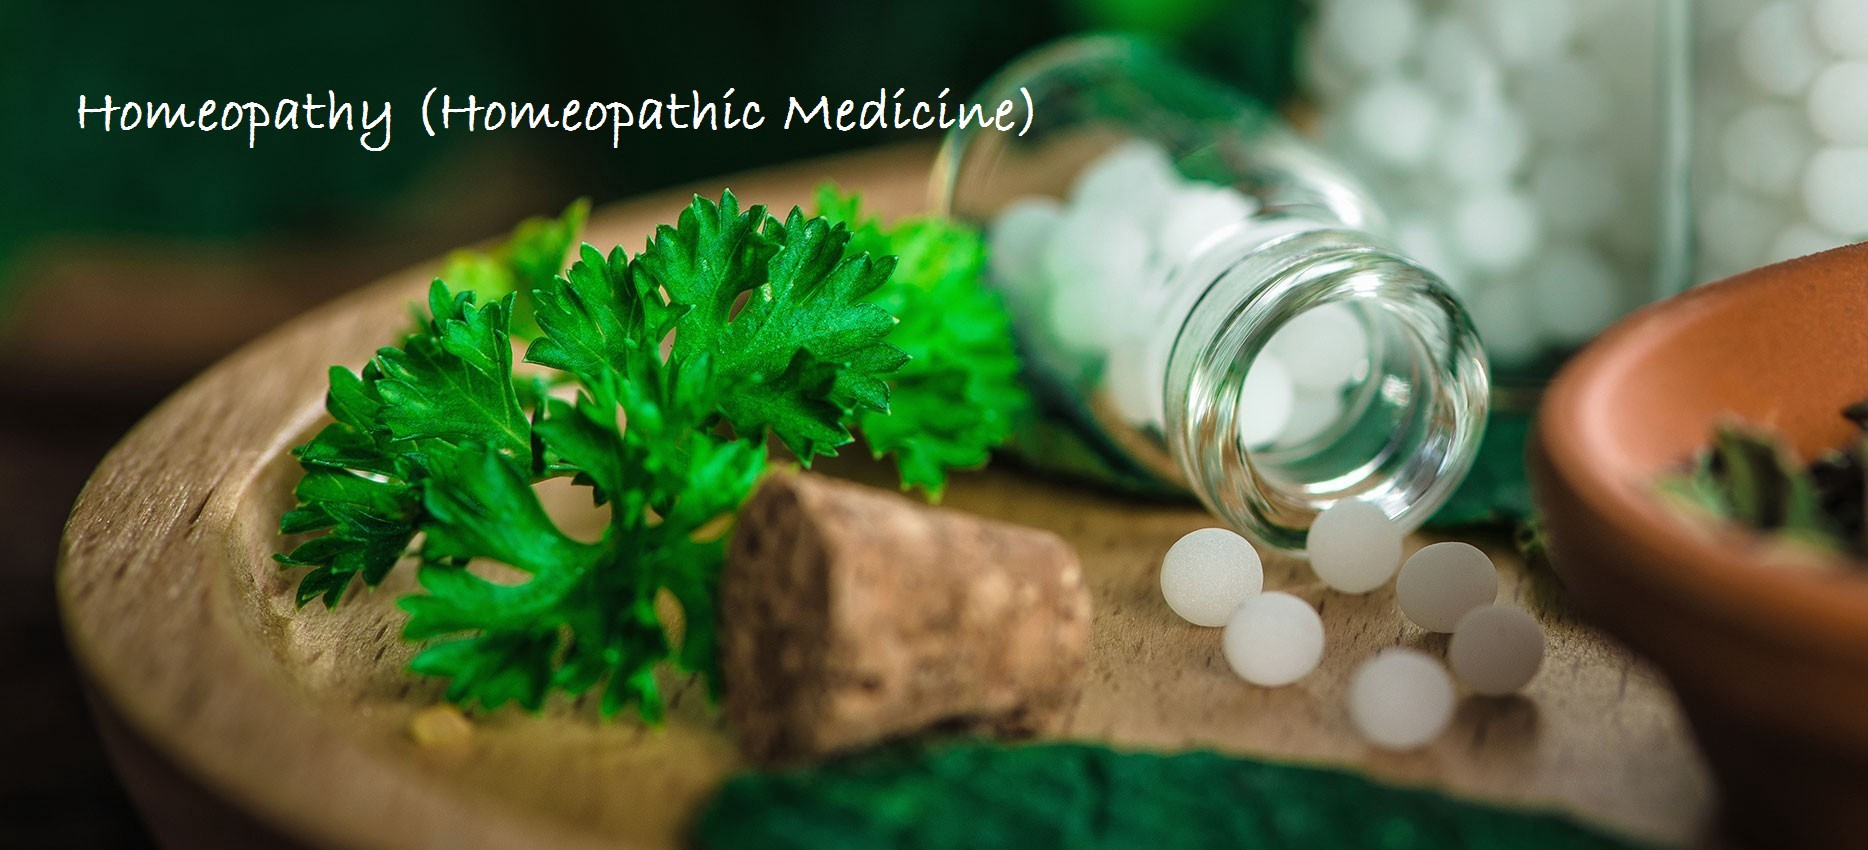 Homeopathy Homeopathic Medicine Market Research Report 2020 2026 By Wilson Rodrigues Medium